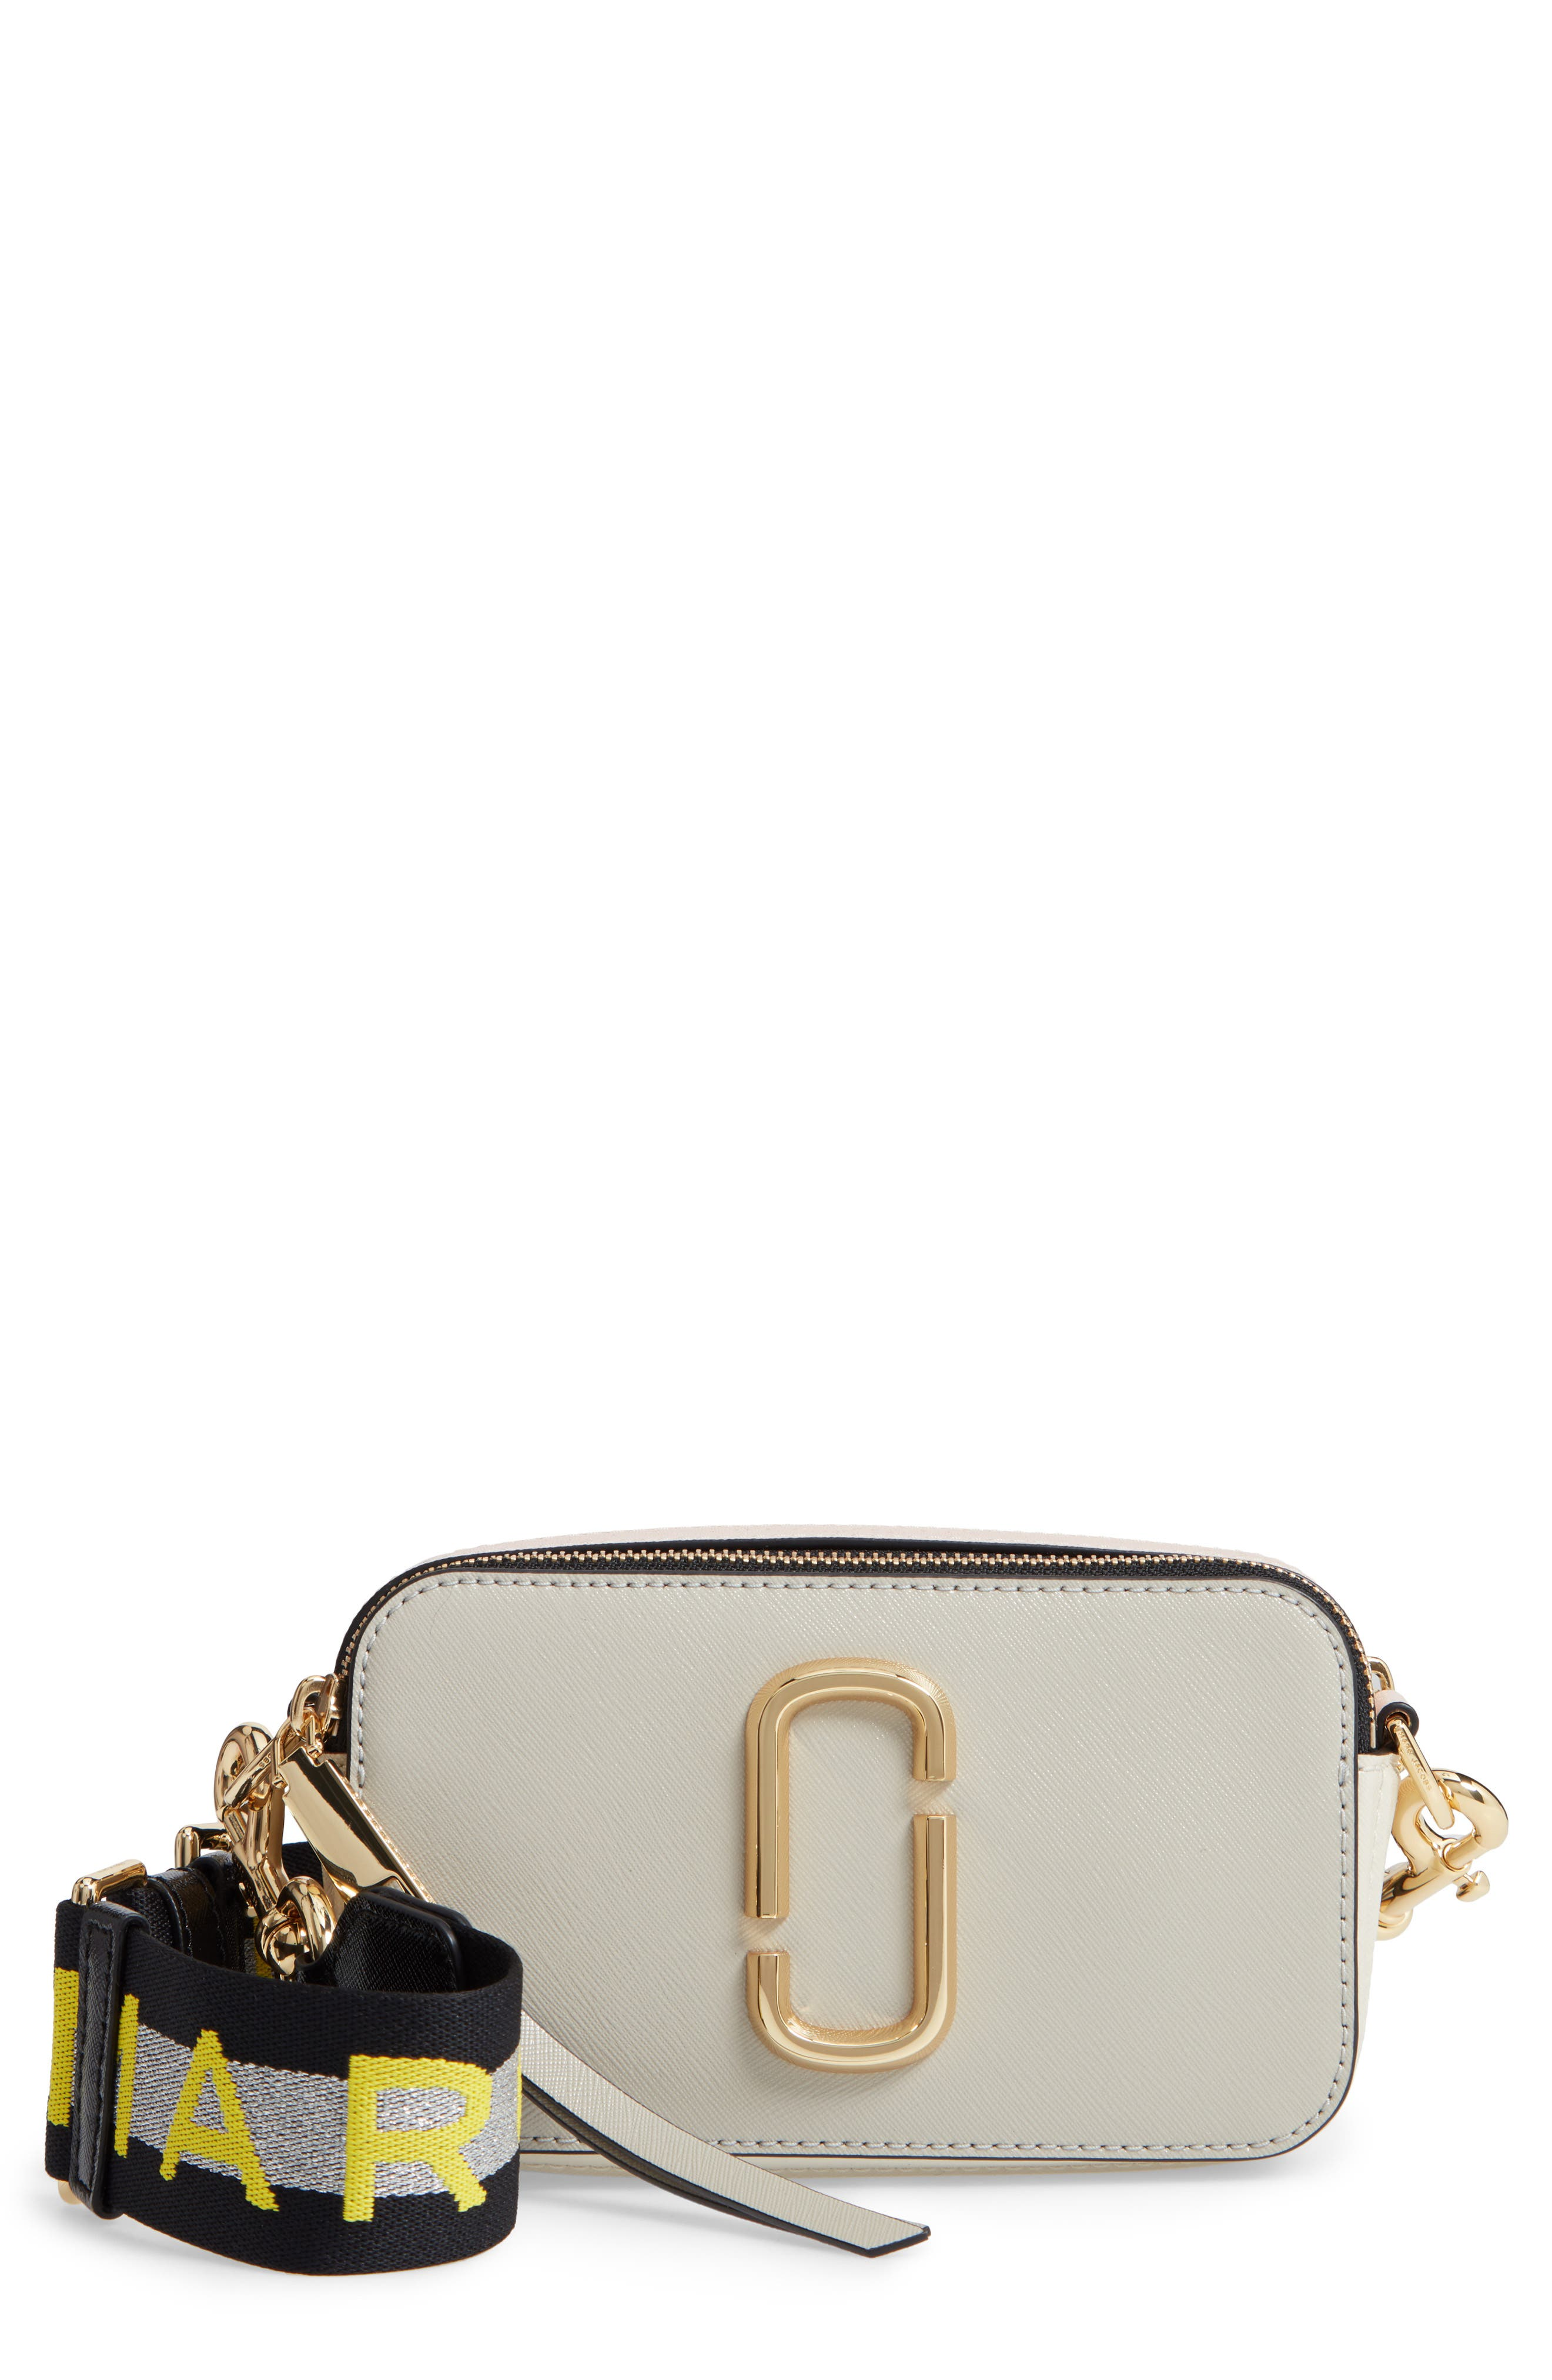 Accessories Marc Clothing Jacobs amp; Nordstrom Women's xHH6ZaInq